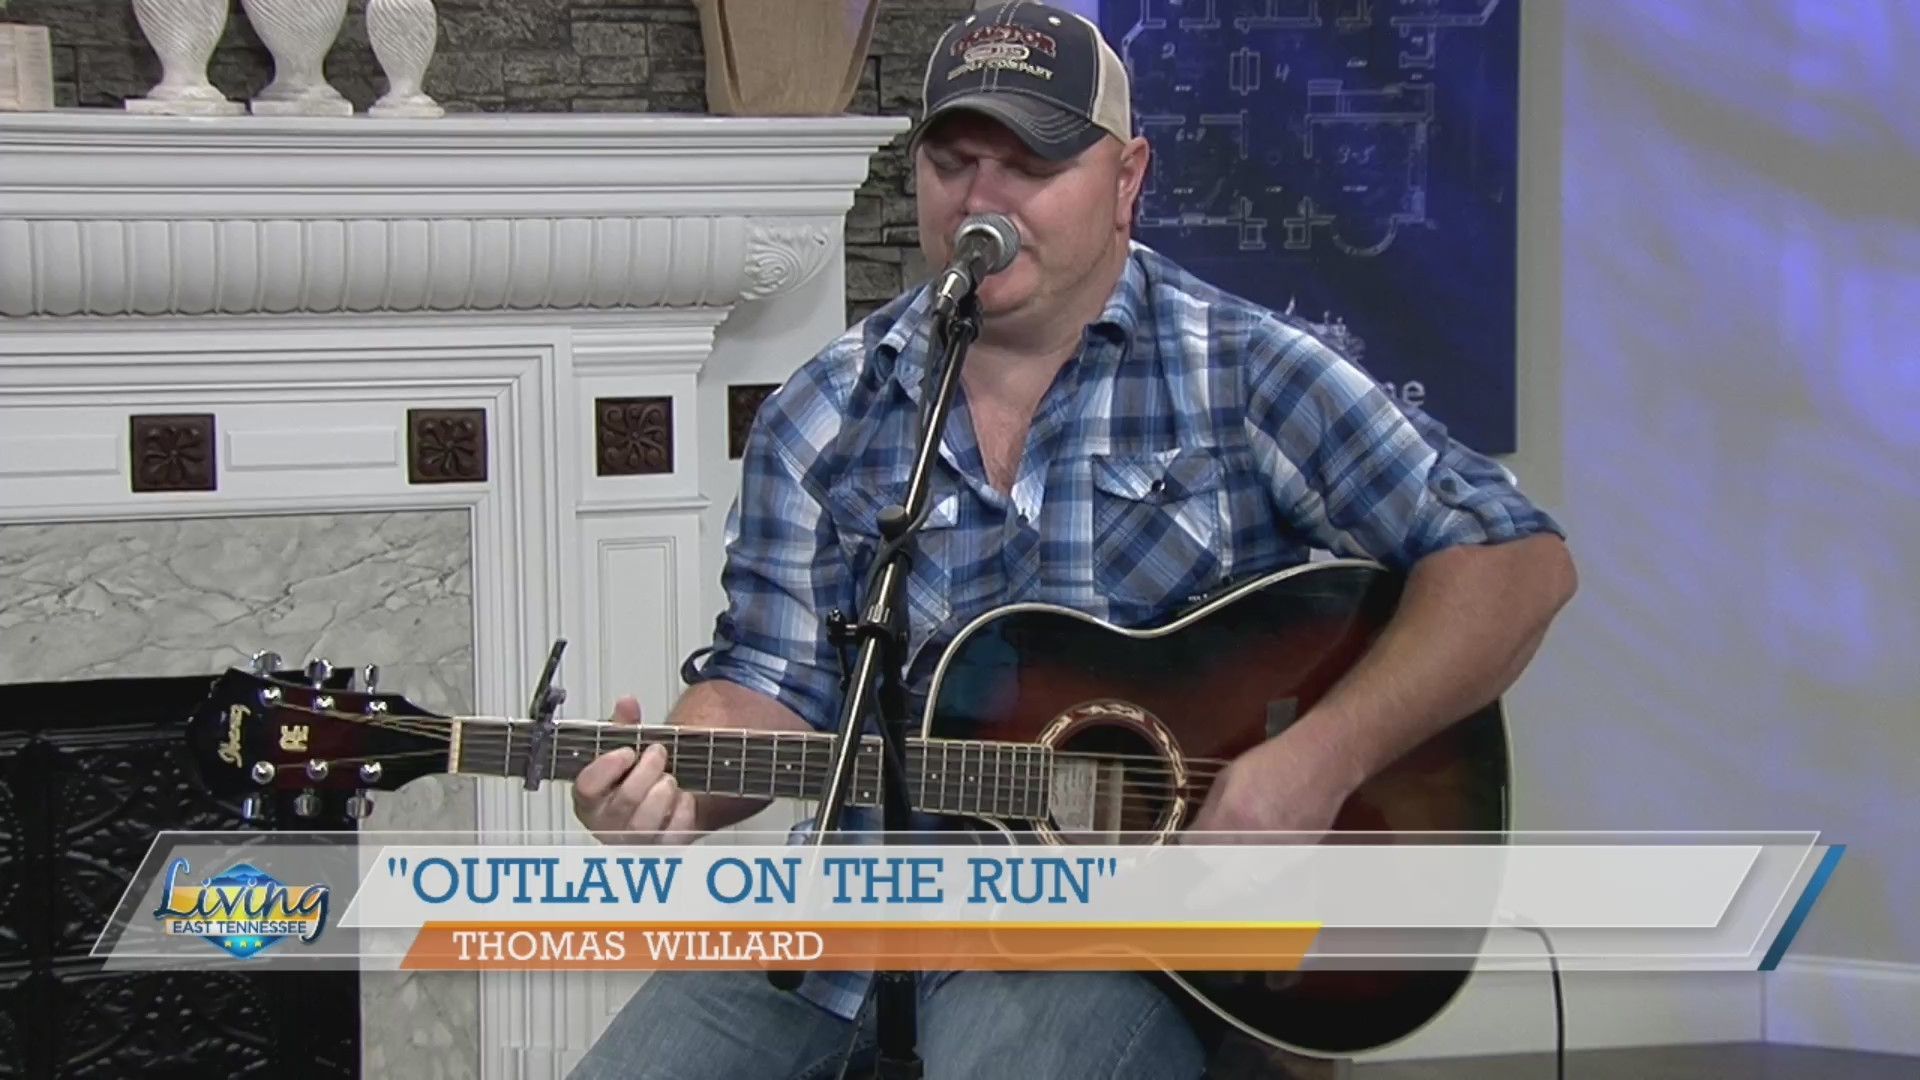 Thomas Willard performs 'Outlaw on the Run'